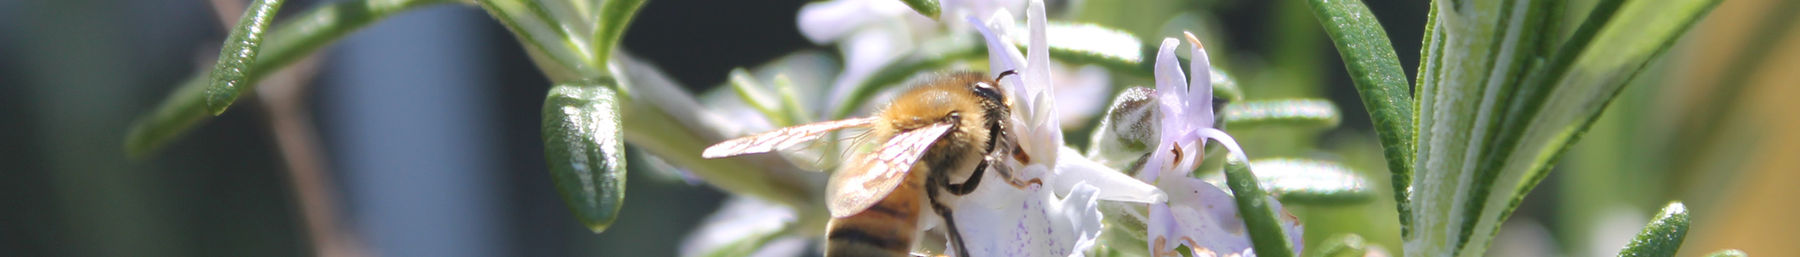 Wikivoyage page banner bee.jpg